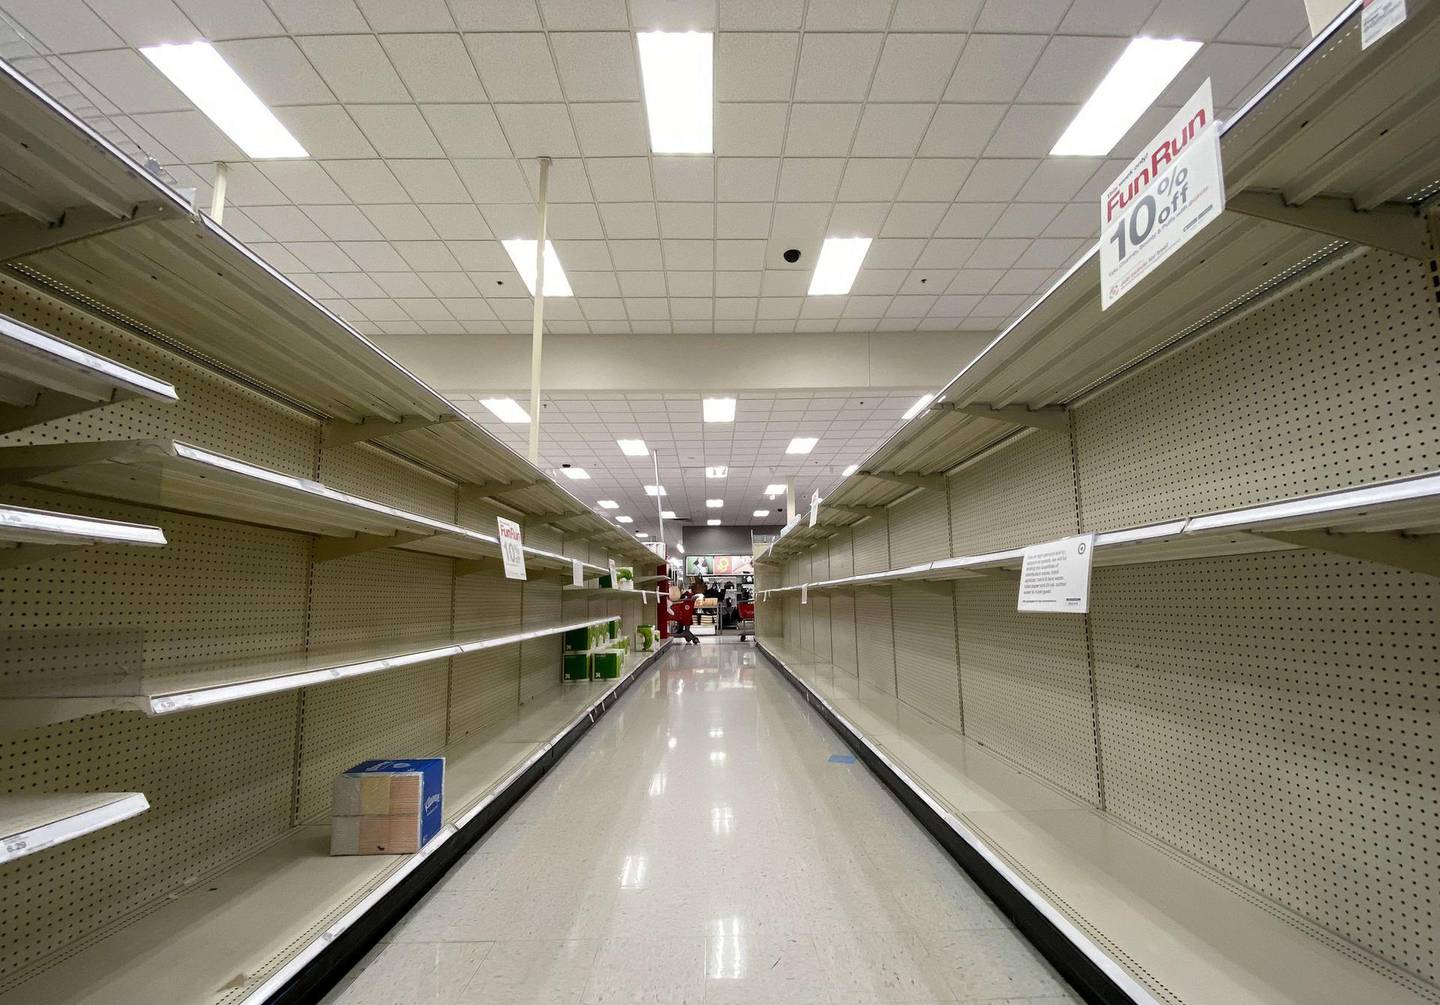 ARLINGTON, VIRGINIA - MARCH 13: Shelves normally stocked with hand wipes, hand sanitizer and toilet paper sit empty at a Target store as people stockpile supplies due to the outbreak of the coronavirus (COVID-19) March 13, 2020 in Arlington, Virginia. The U.S. government is racing to make more coronavirus test kits available as schools close around the country, sporting events are canceled, and businesses encourage workers to telecommute where possible.   Win McNamee/Getty Images/AFP == FOR NEWSPAPERS, INTERNET, TELCOS & TELEVISION USE ONLY ==